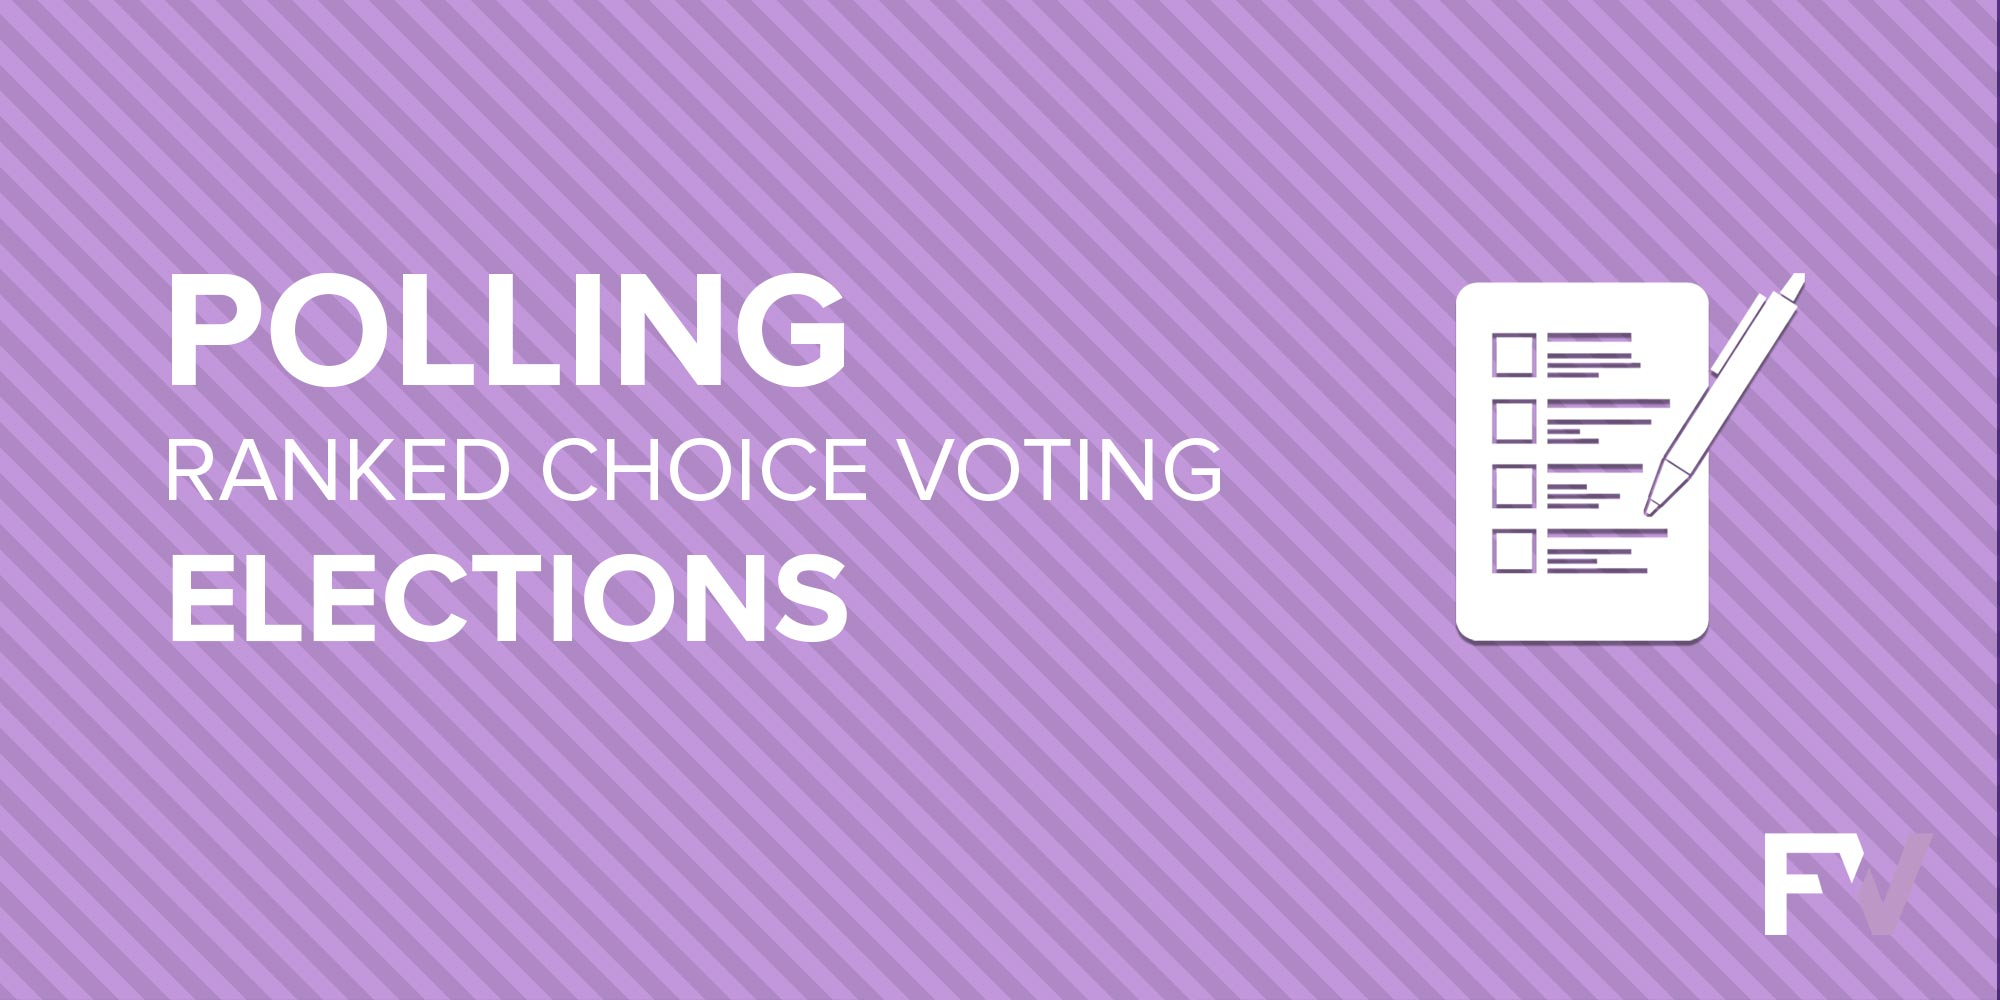 Keep it simple: Advice for polling ranked choice elections